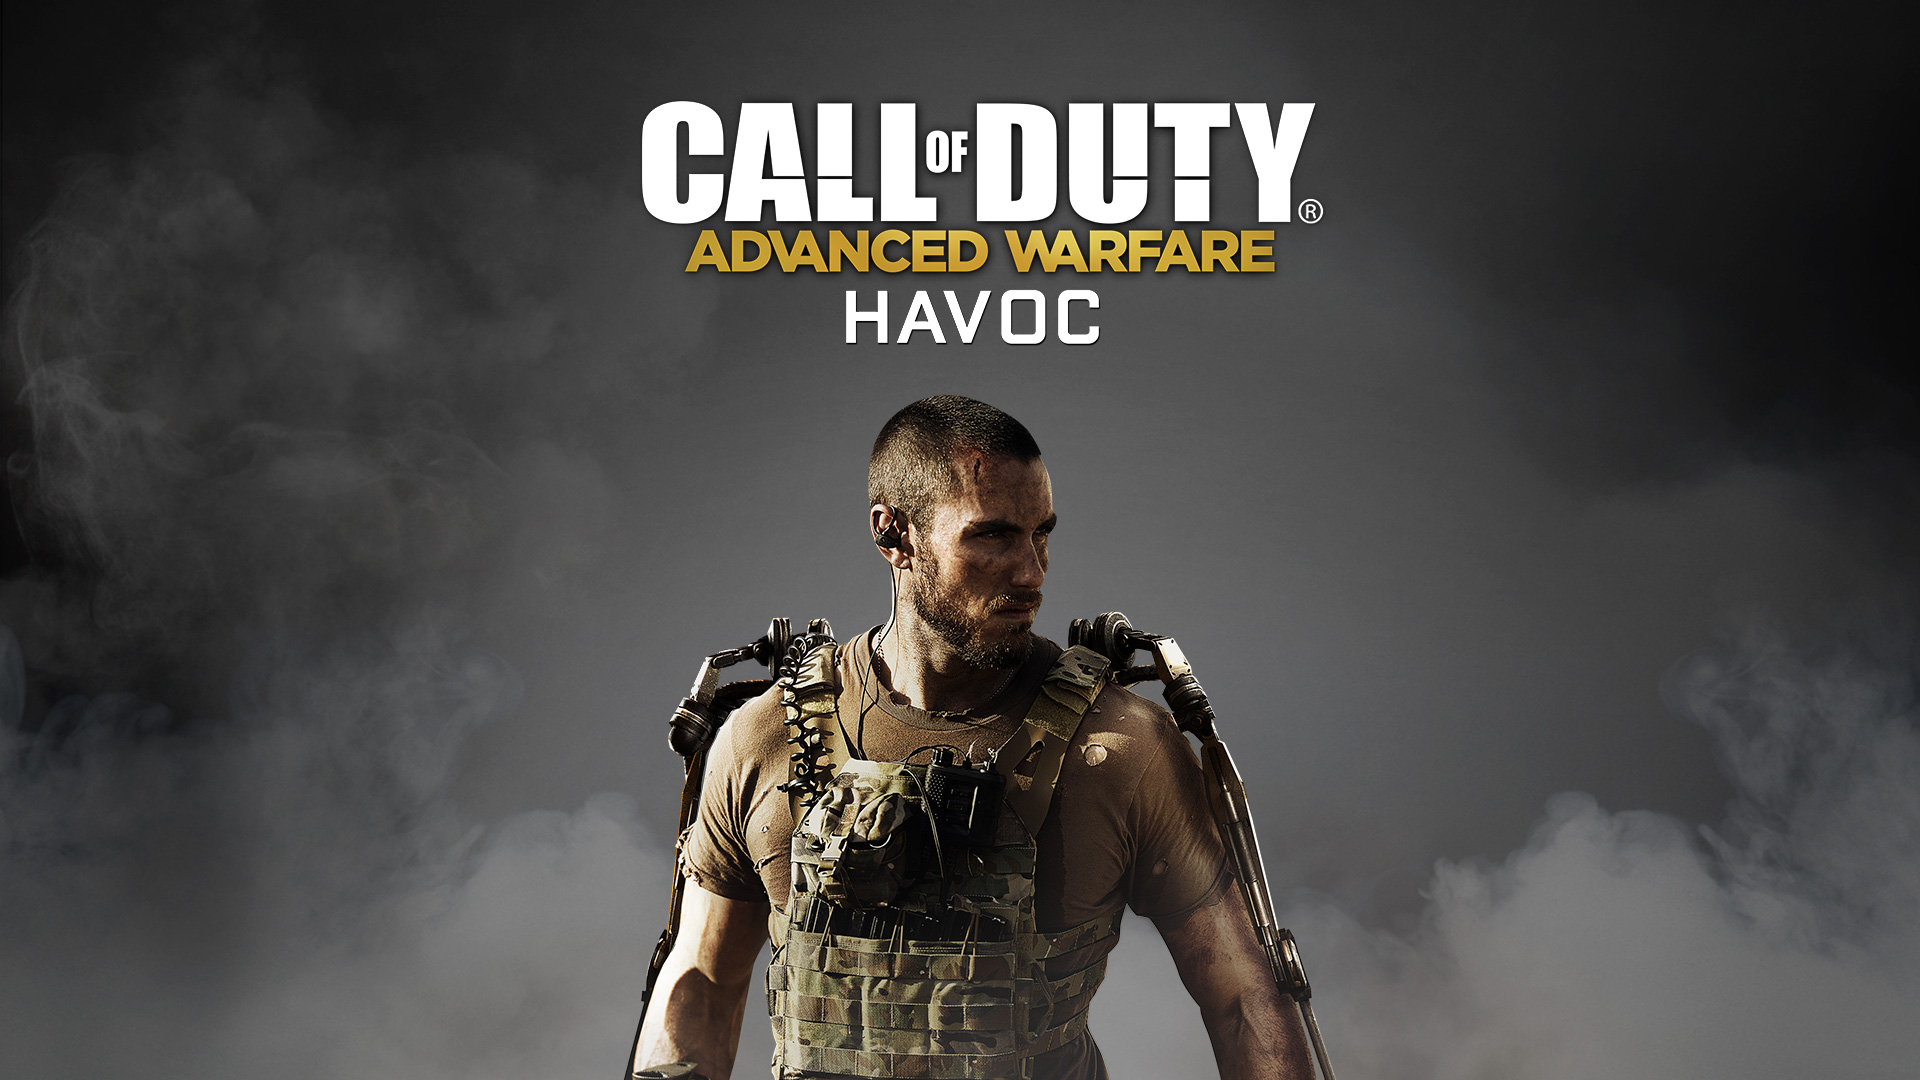 call-of-duty-advanced-warfare-havoc-dlc-listing-thumb-01-us-26feb15